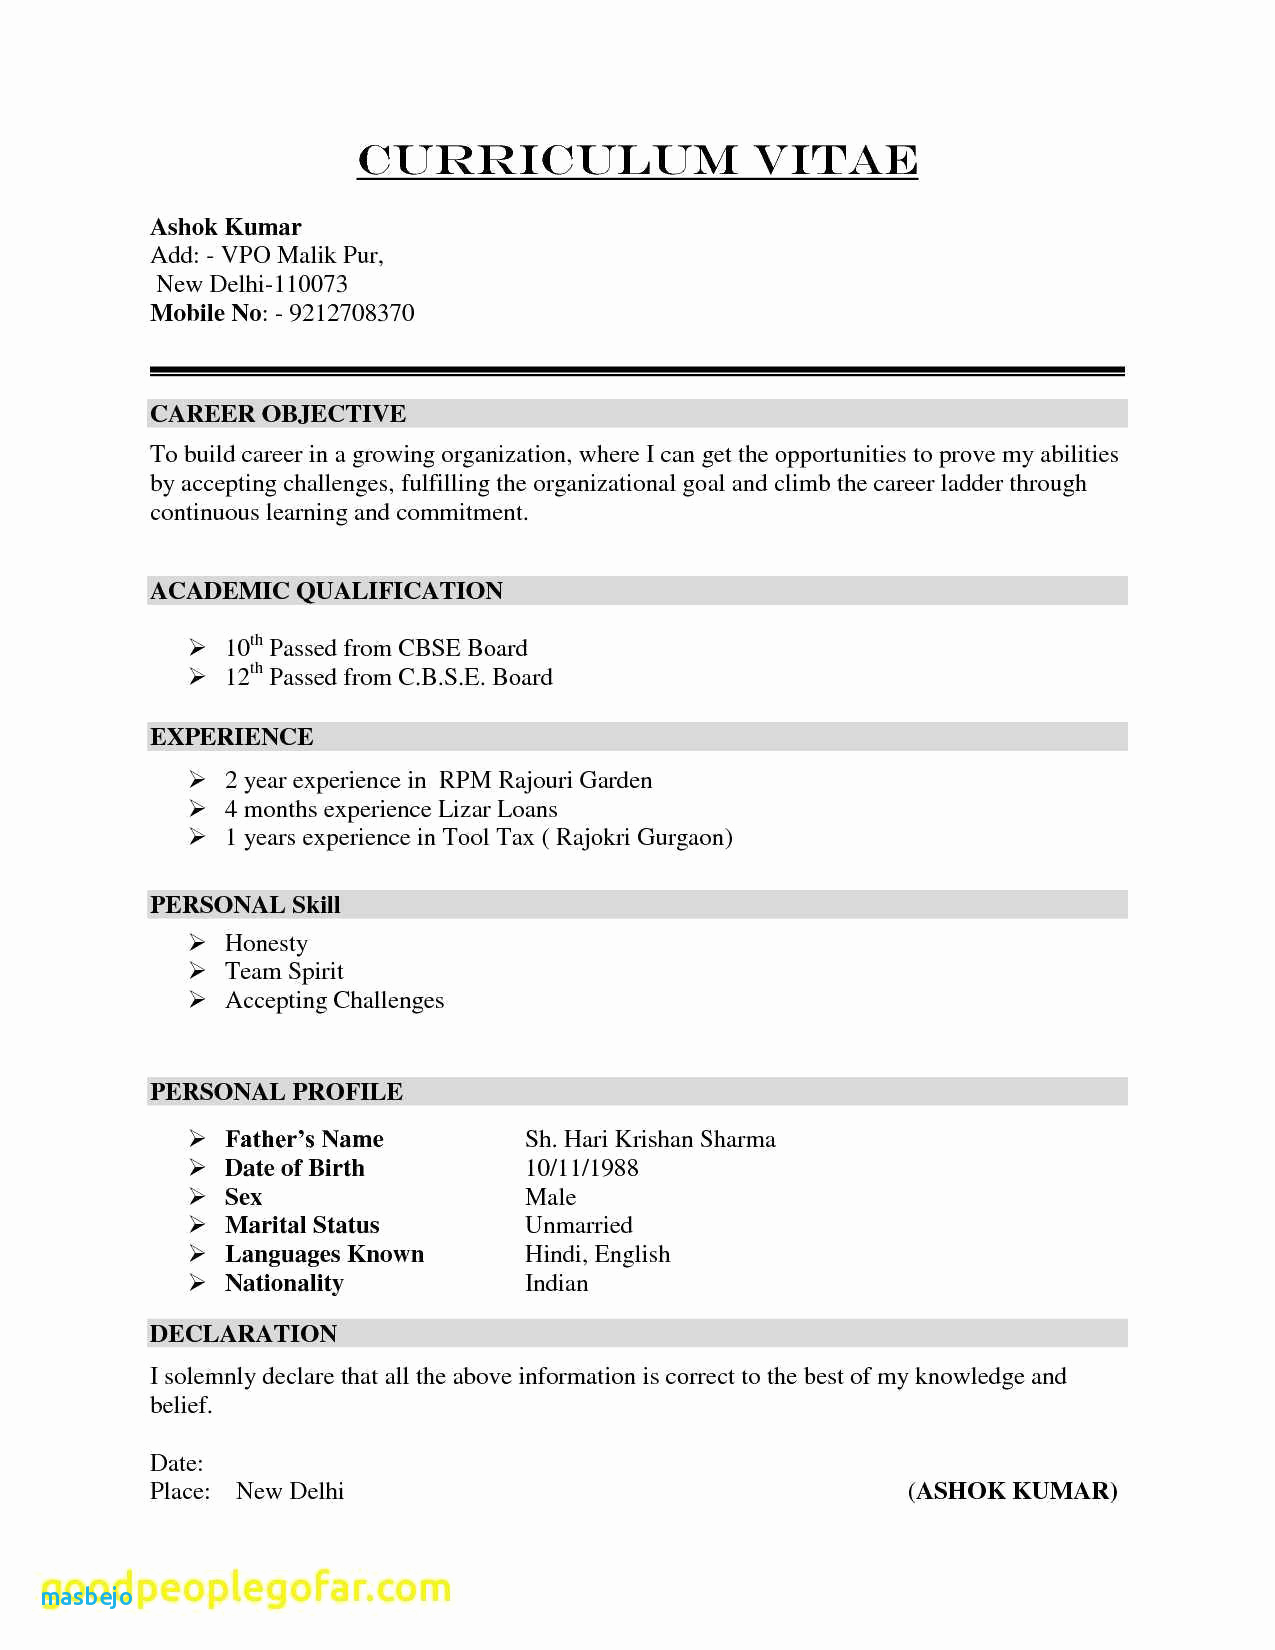 Good Headline for Resume - Good Headline for Resume Inspirational Good Examples Resumes New 38